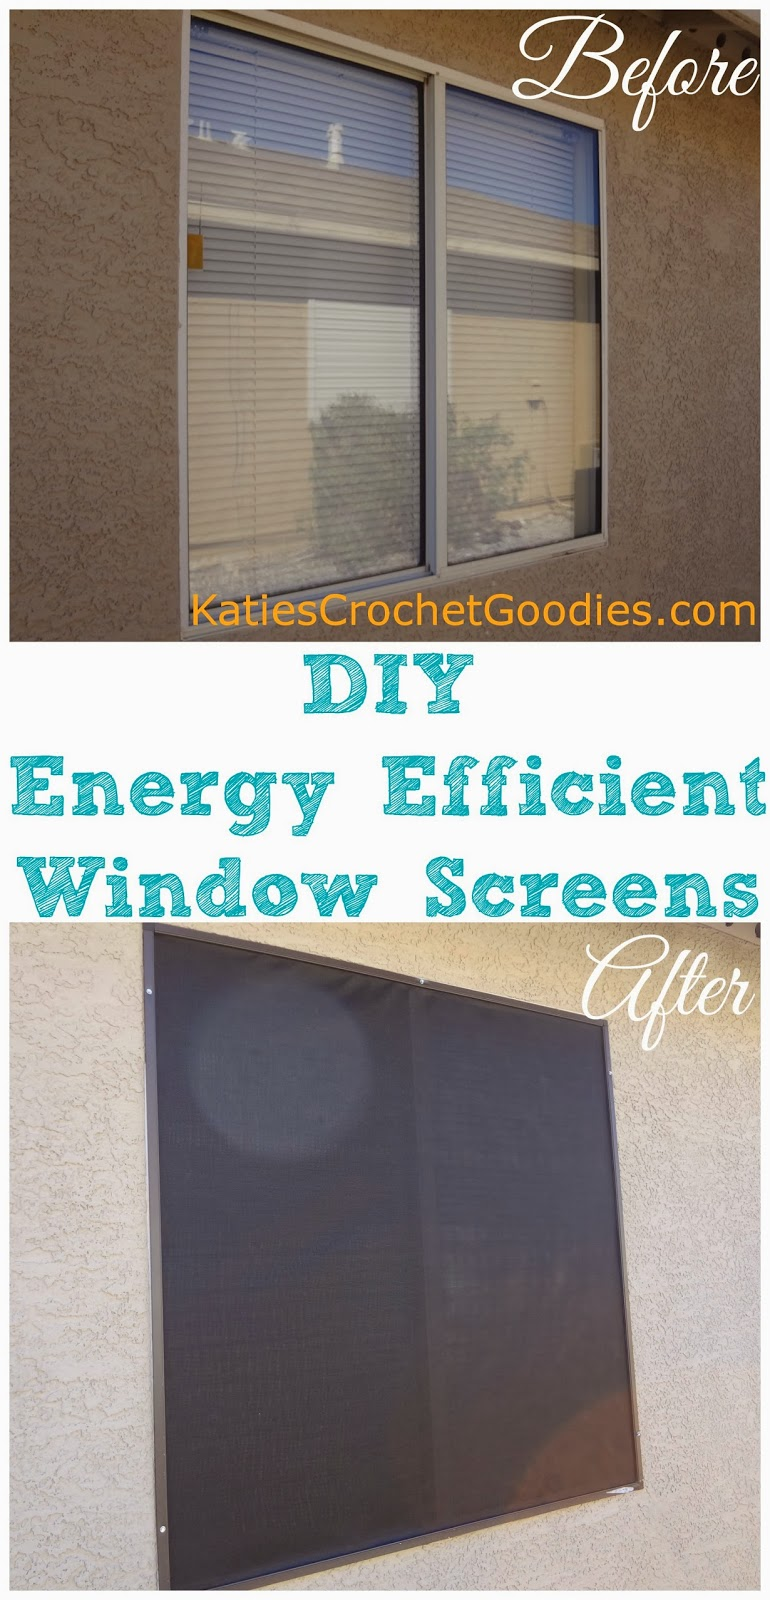 Diy energy efficient window screens katie 39 s crochet goodies for Energy efficient windows